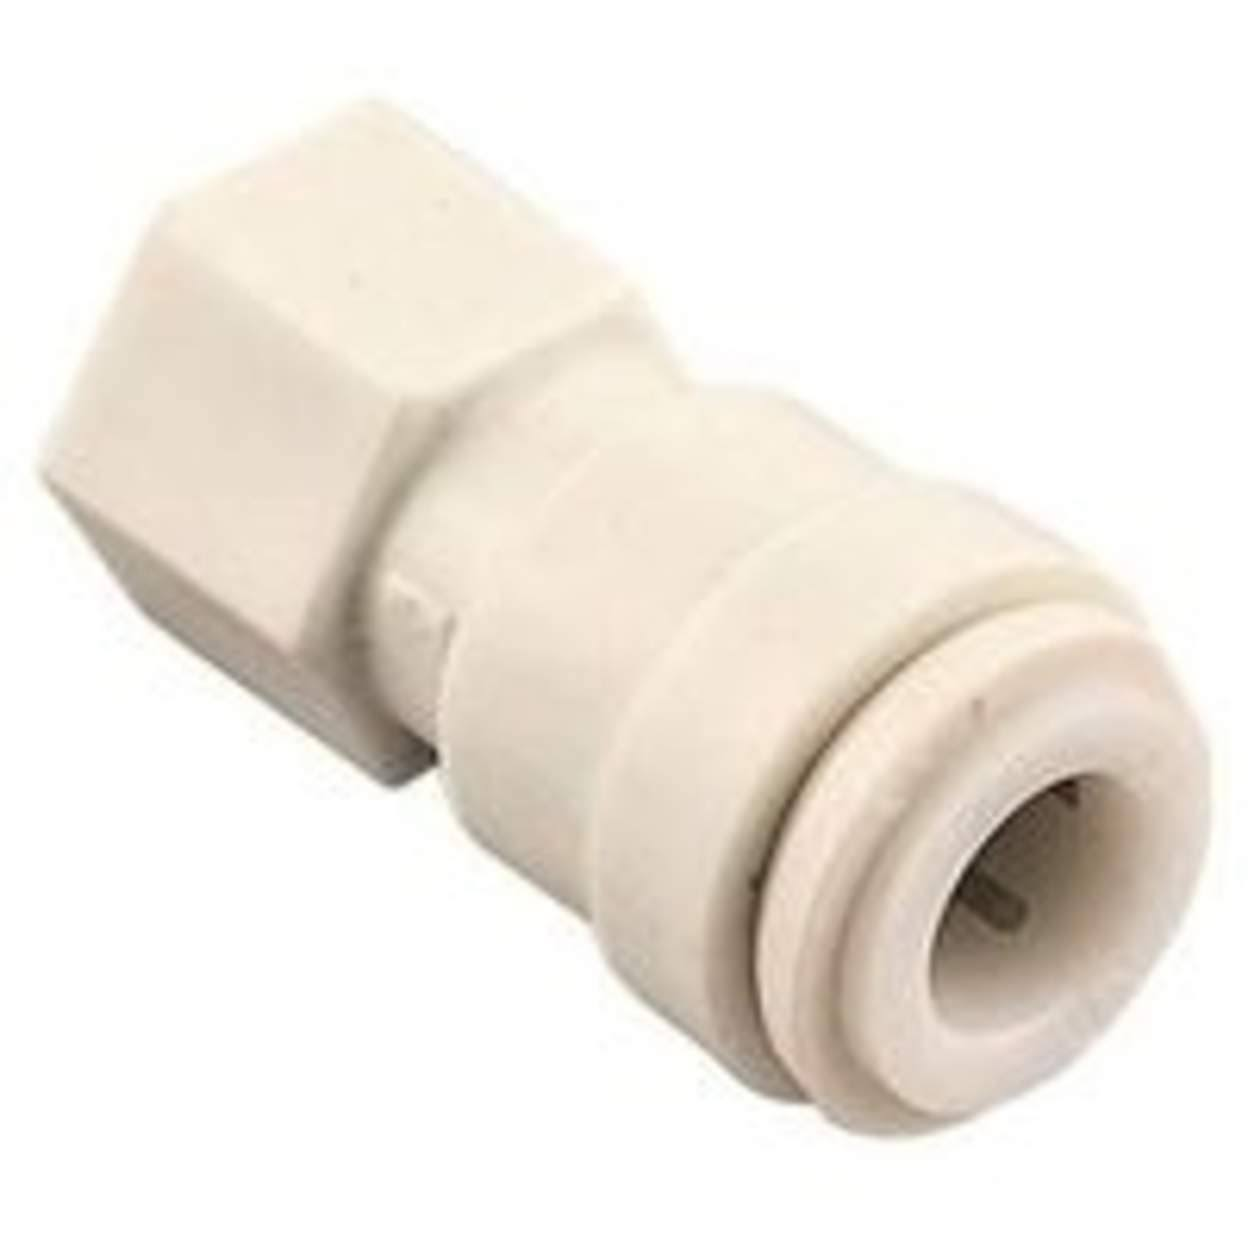 "Watts Pl-3065 Push Female Adapter - 3/8"" X 1/4"" FPT"